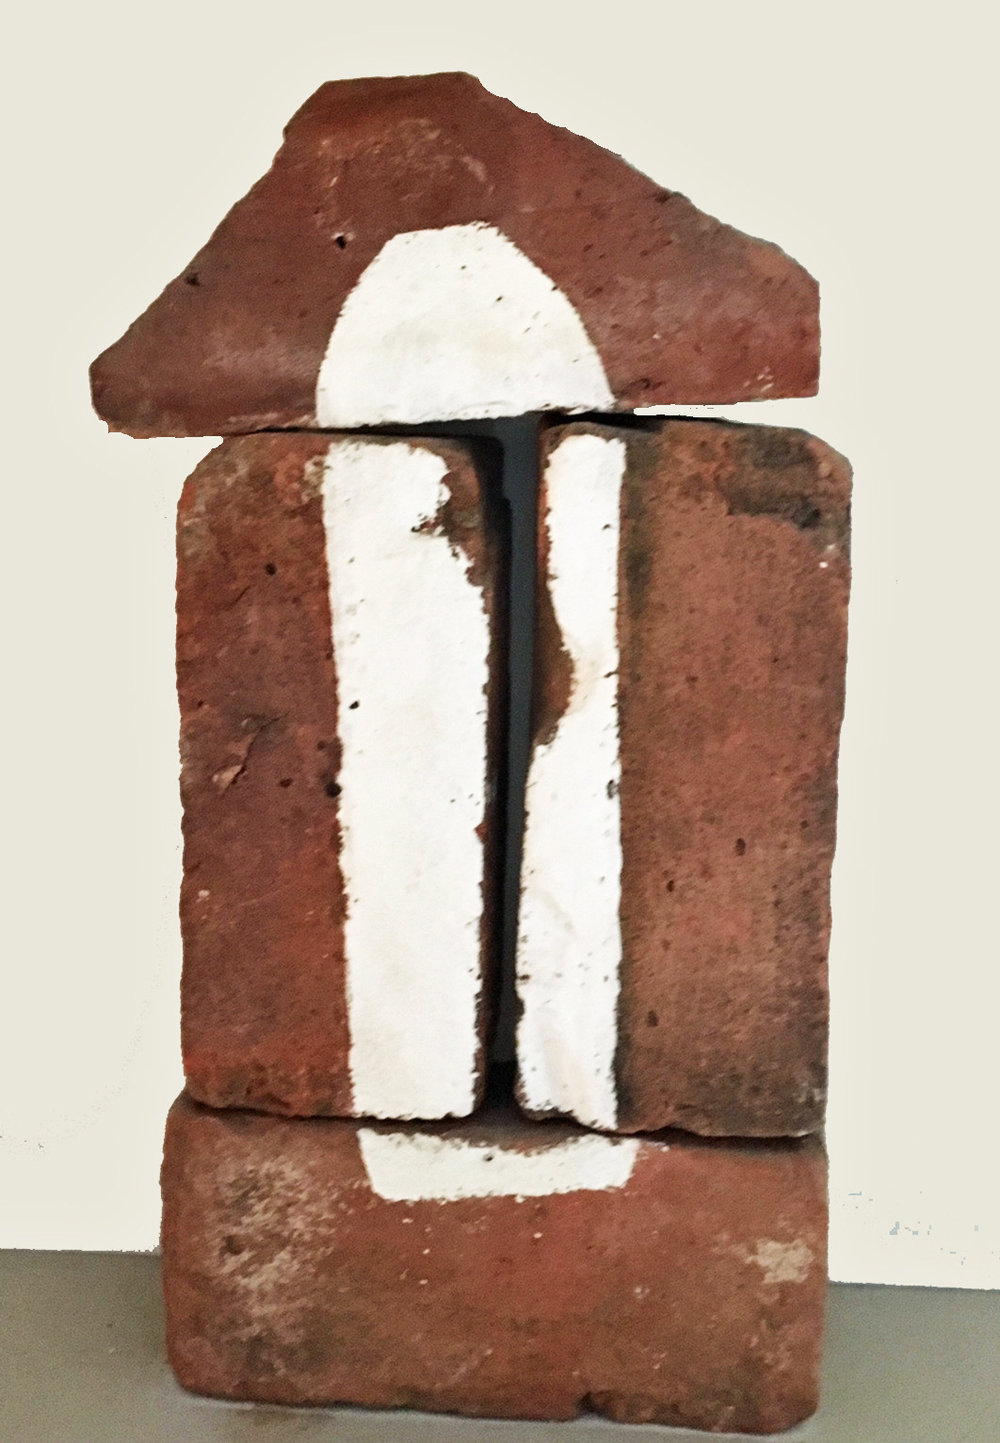 Brick-a-Brac 4     8 x 16 x 4 inches    Acrylic on Bricks 2000